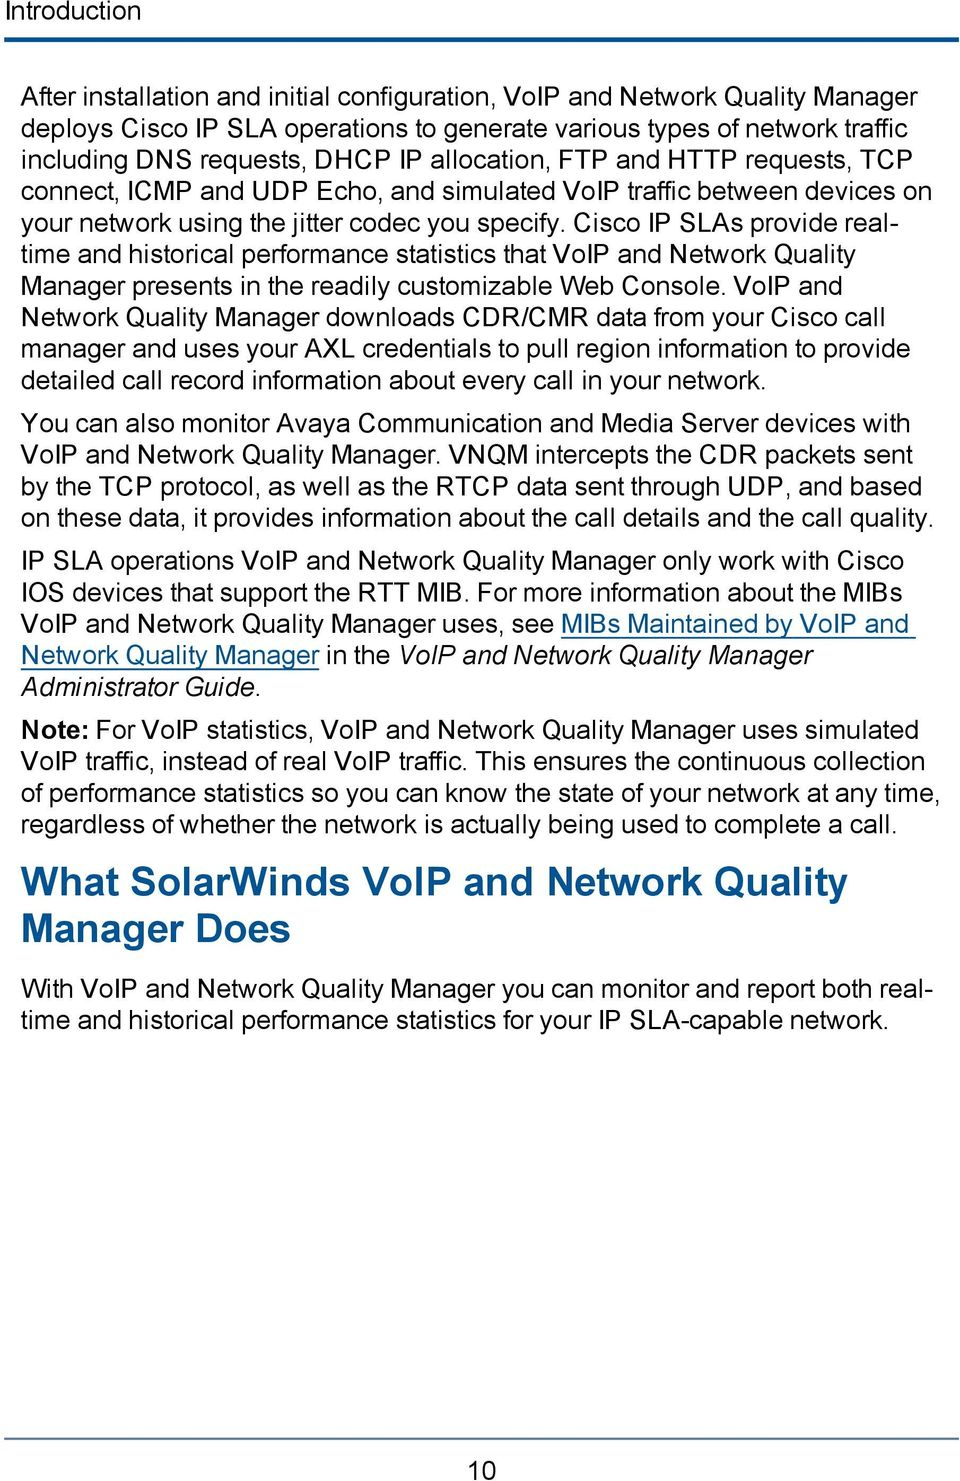 Cisco IP SLAs provide realtime and historical performance statistics that VoIP and Network Quality Manager presents in the readily customizable Web Console.